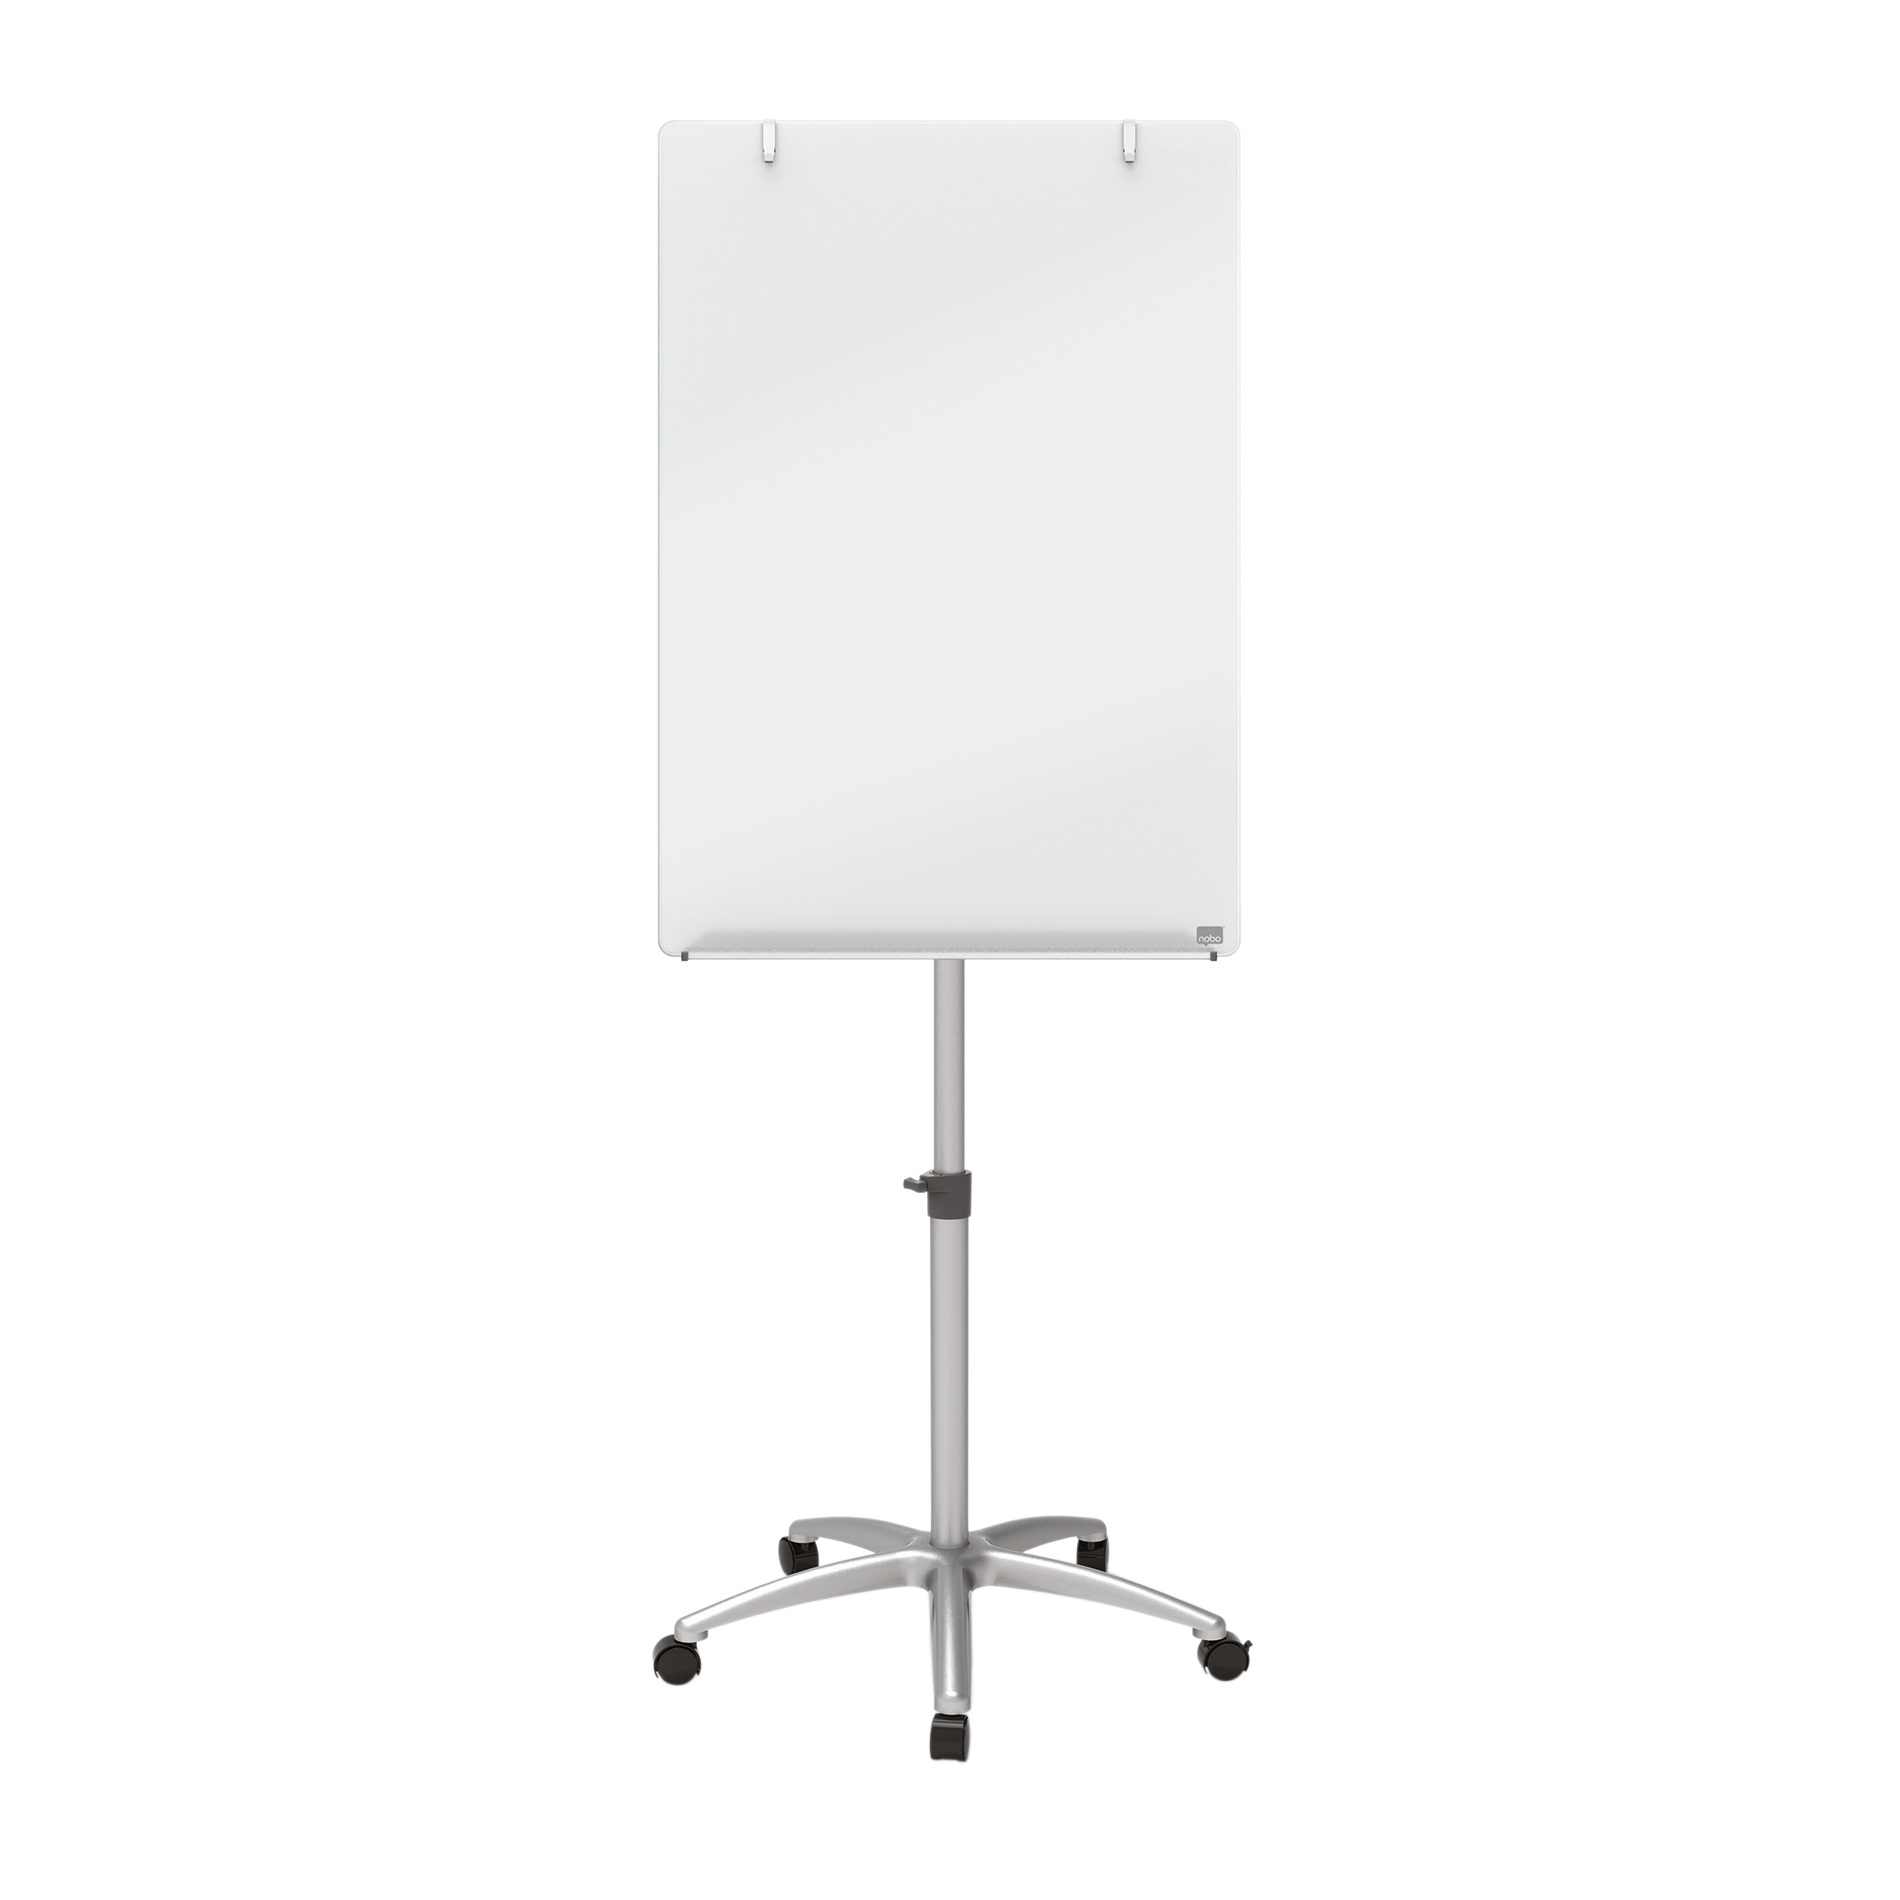 Cleaning / Erasing Nobo Brill White Mobile Easel Glass Board Size 700x1000mm W700xOverall Height 1850mm White Ref 1903949